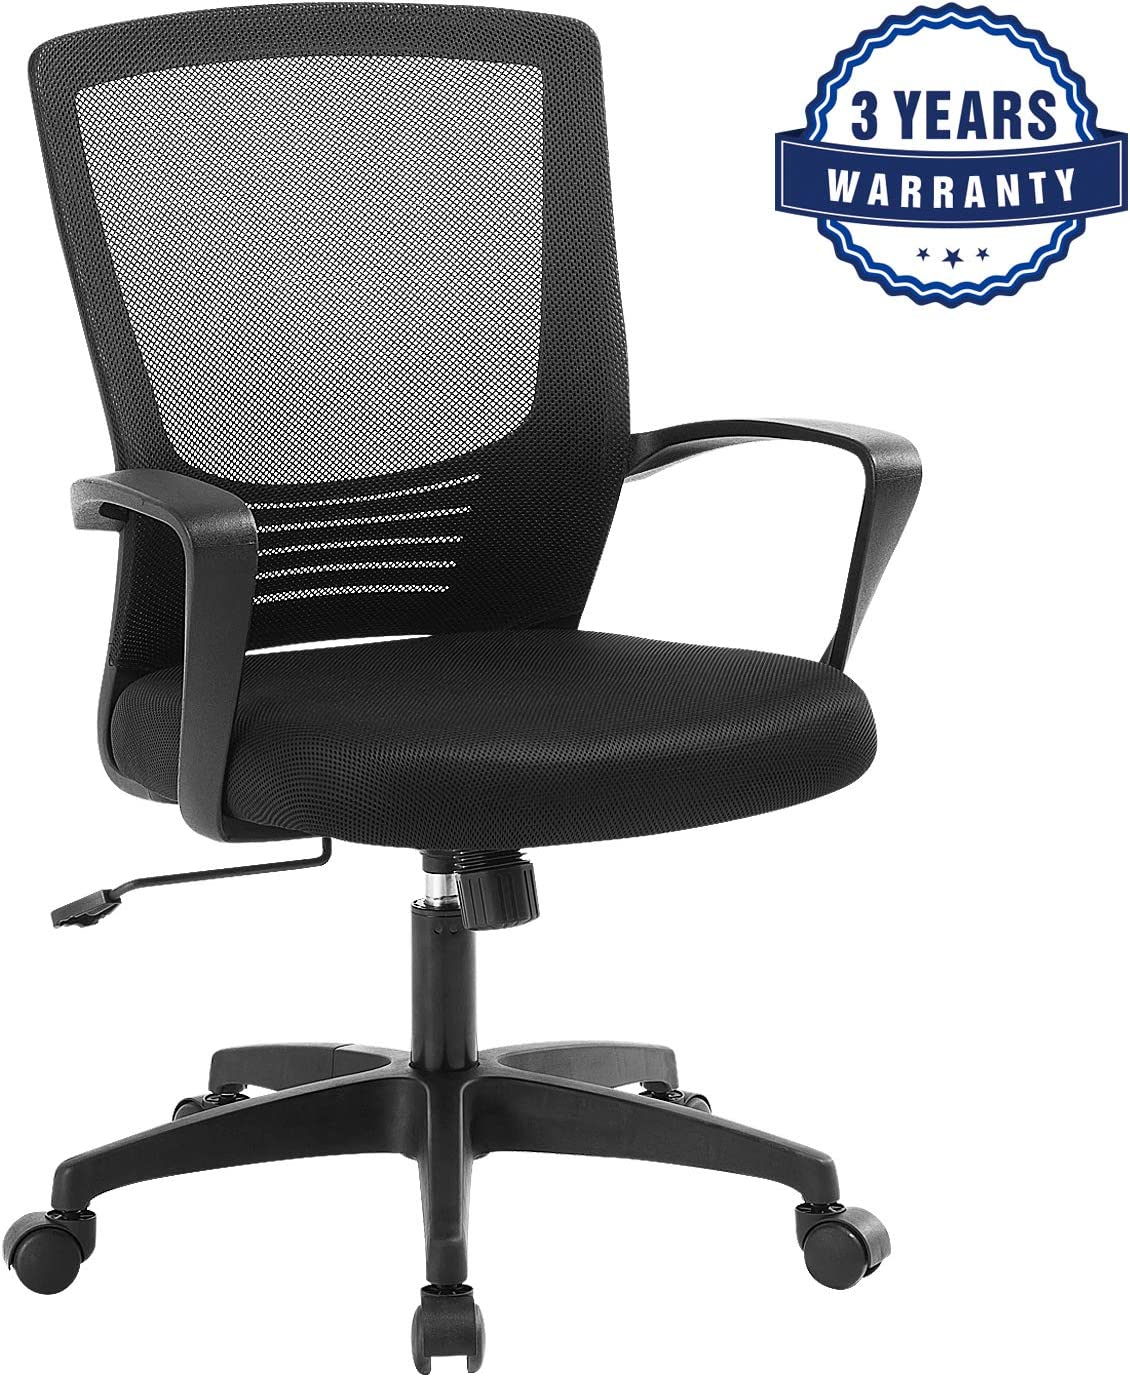 Office Desk Chair, Mid-Back Task Mesh Chair with armrest, Executive Drafting Chair for Home and Office, Ergonomic Swivel Chair for Computer Game, Black